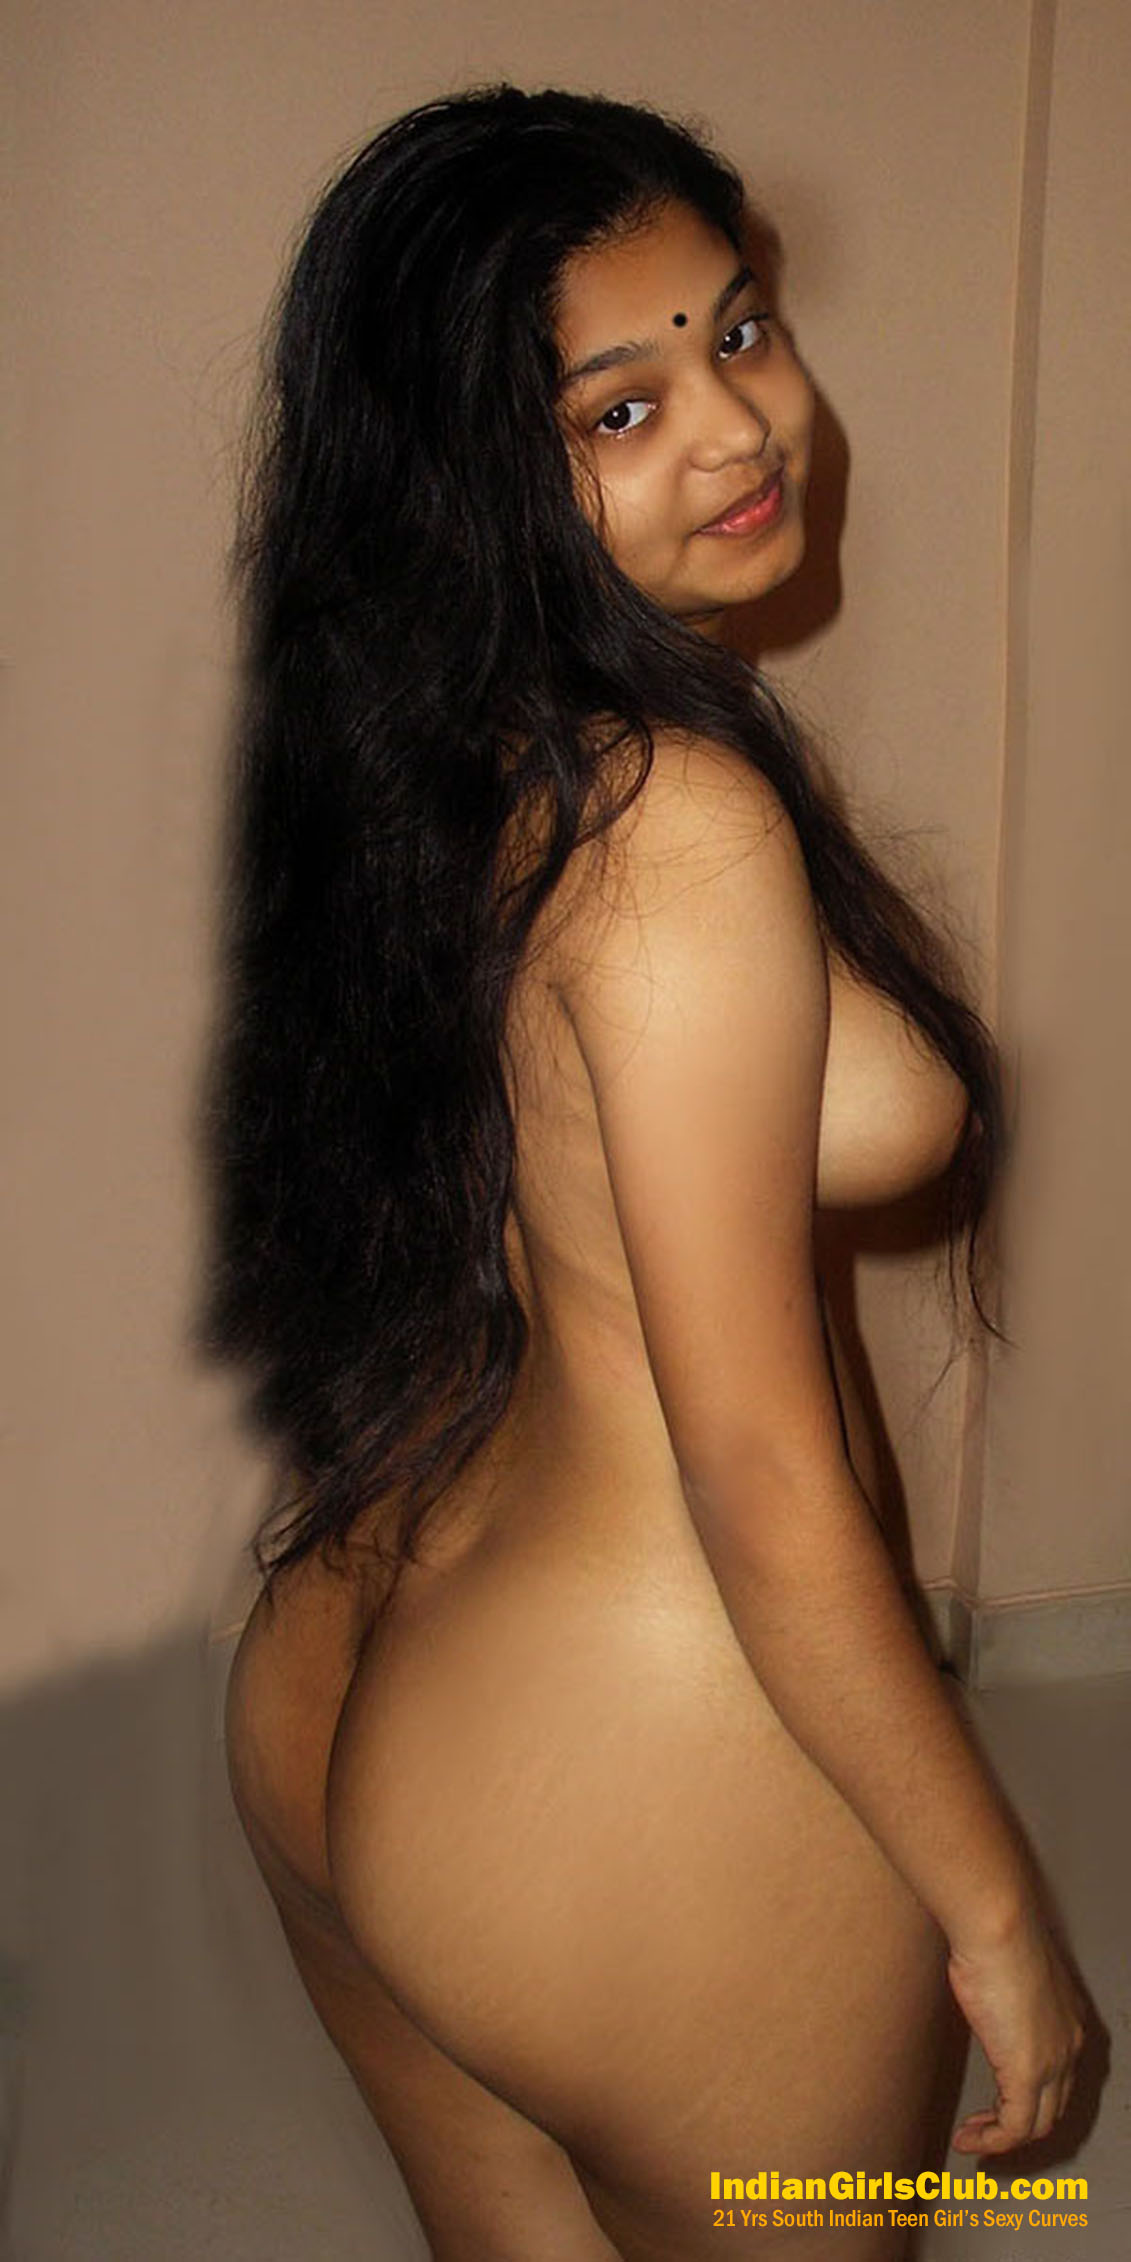 Www nude indian lady